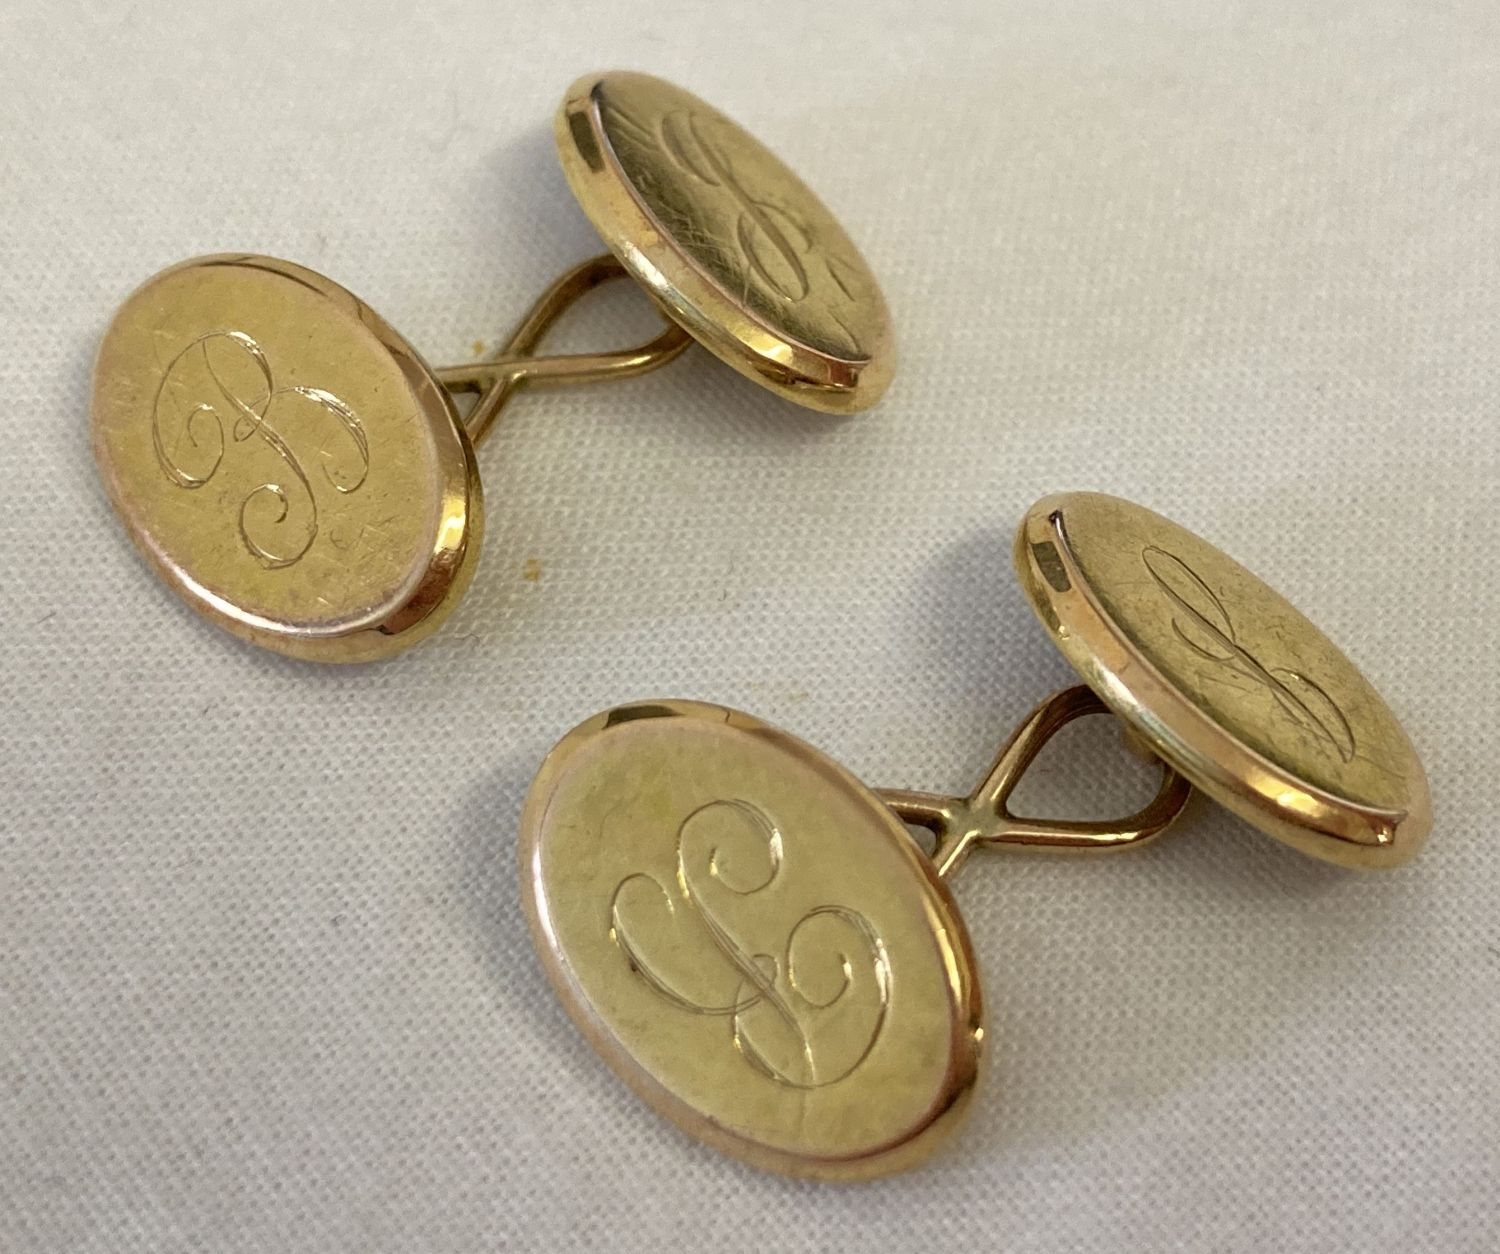 A pair of gold oval shaped cufflinks with engraved initials J & B.